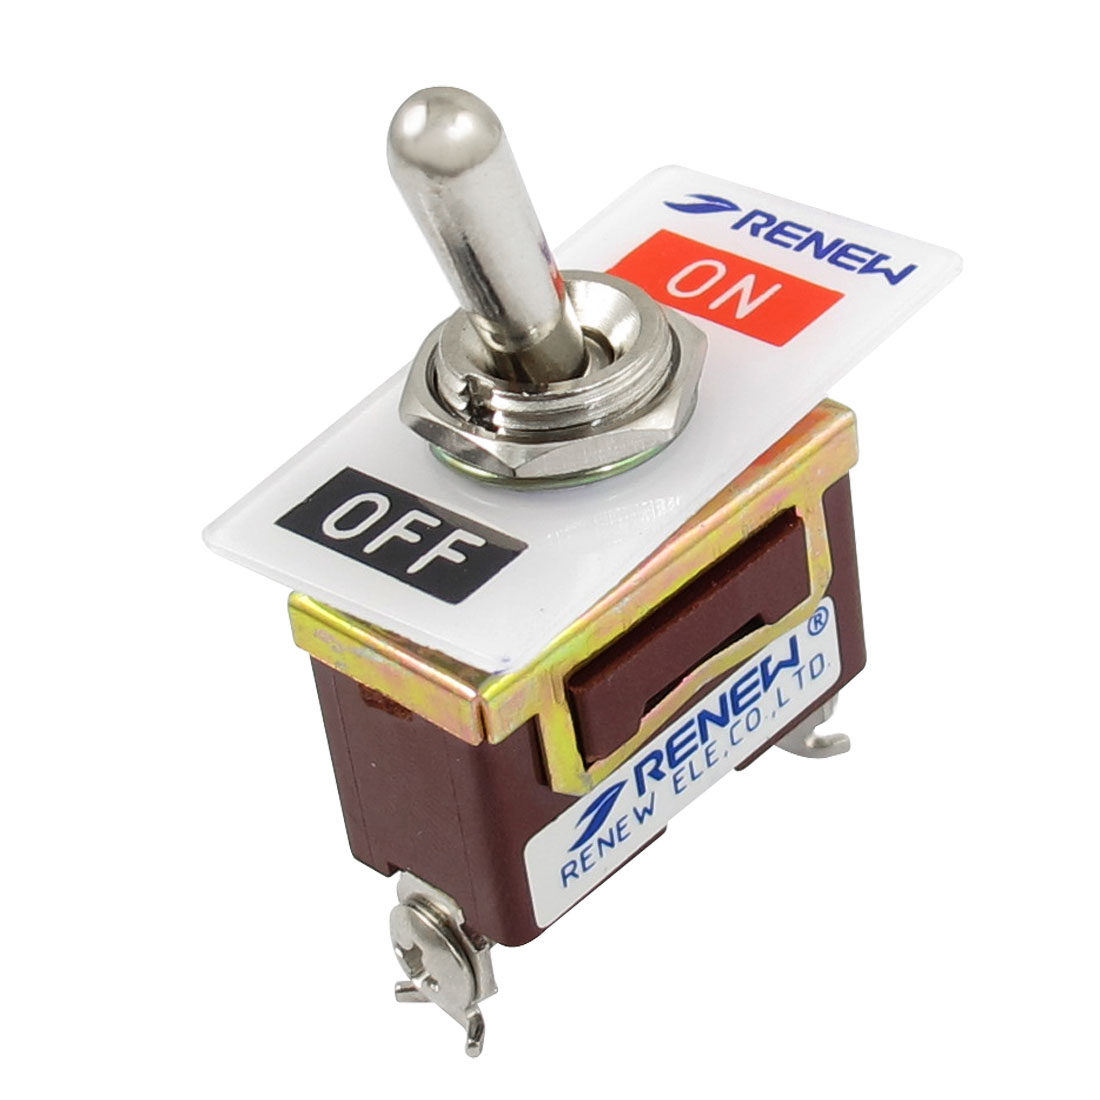 AC 250V/15A 125V/20A 2 Screw Terminals On-Off 2 Position SPST Toggle Switch